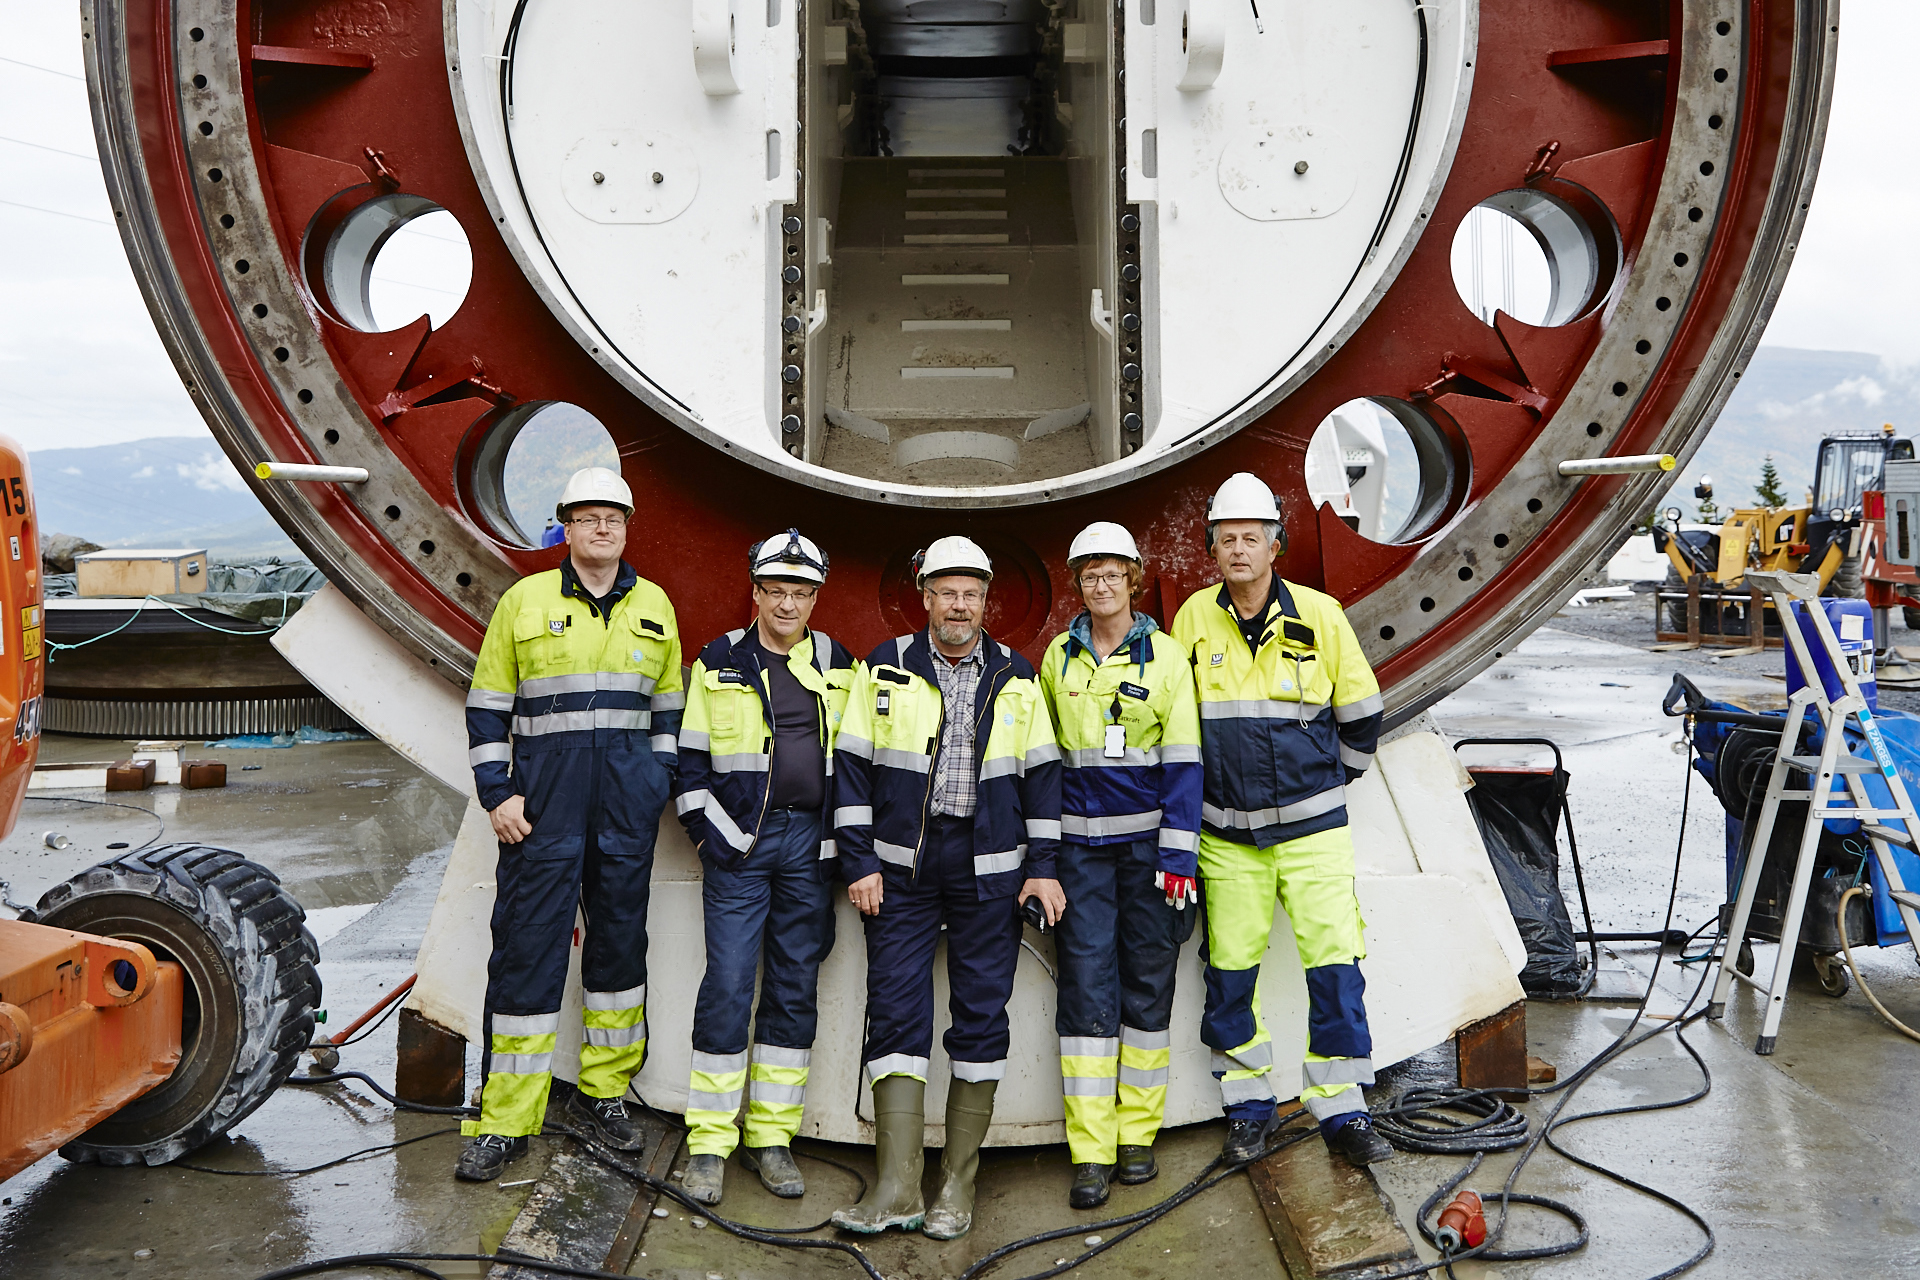 Employees at Røssåga hydropower plant.